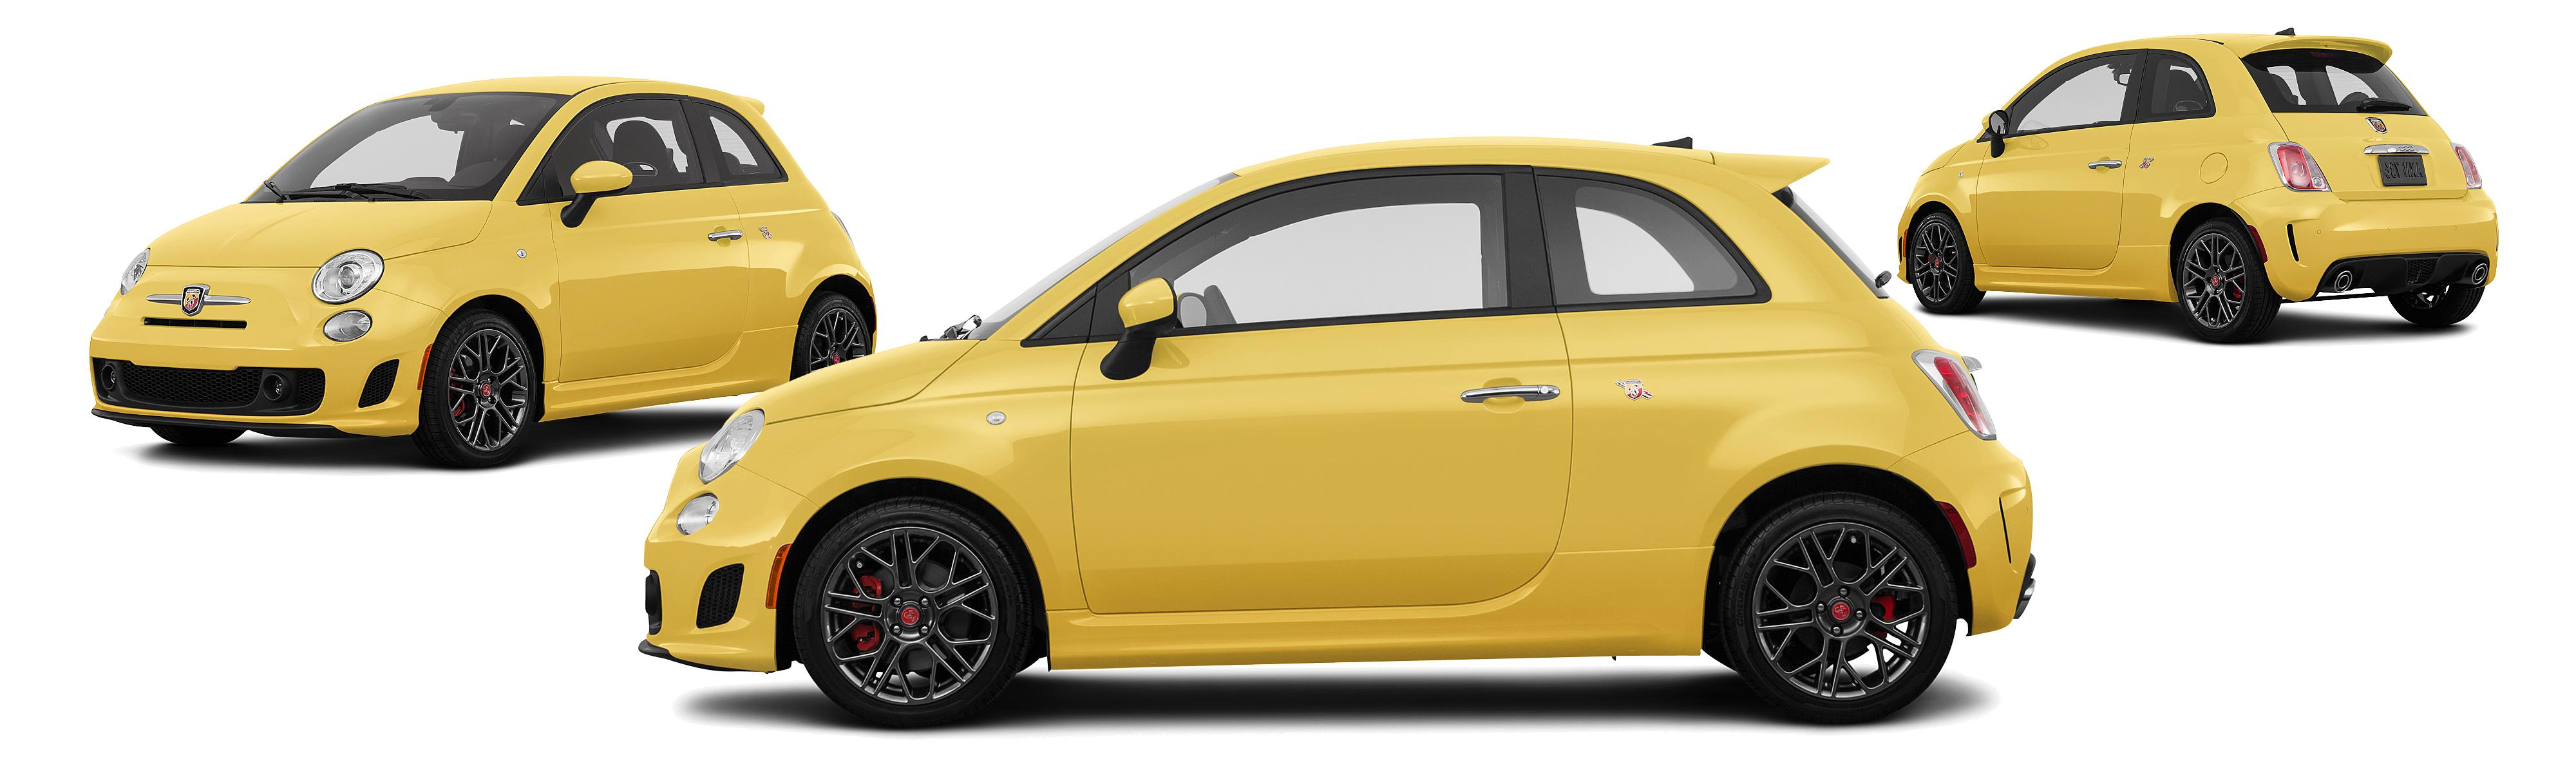 2017 FIAT 500 Abarth 2dr Hatchback - Research - GrooveCar